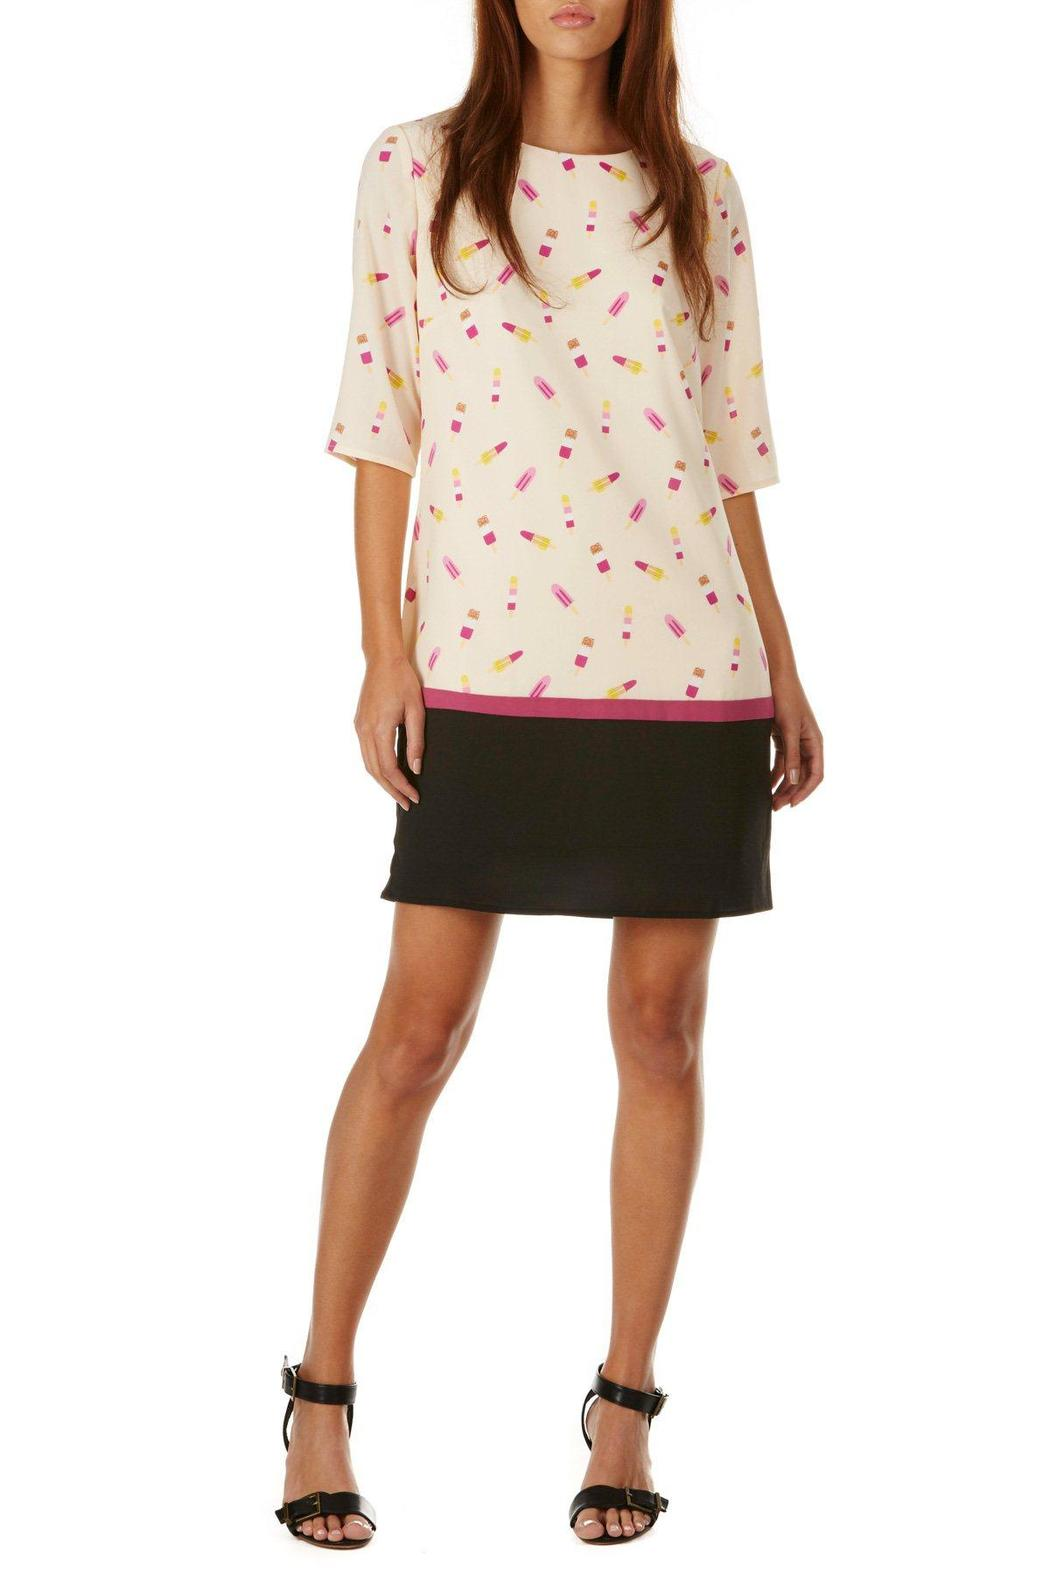 Wit & Whimsy Popsicle Dress from Fayetteville — Shoptiques